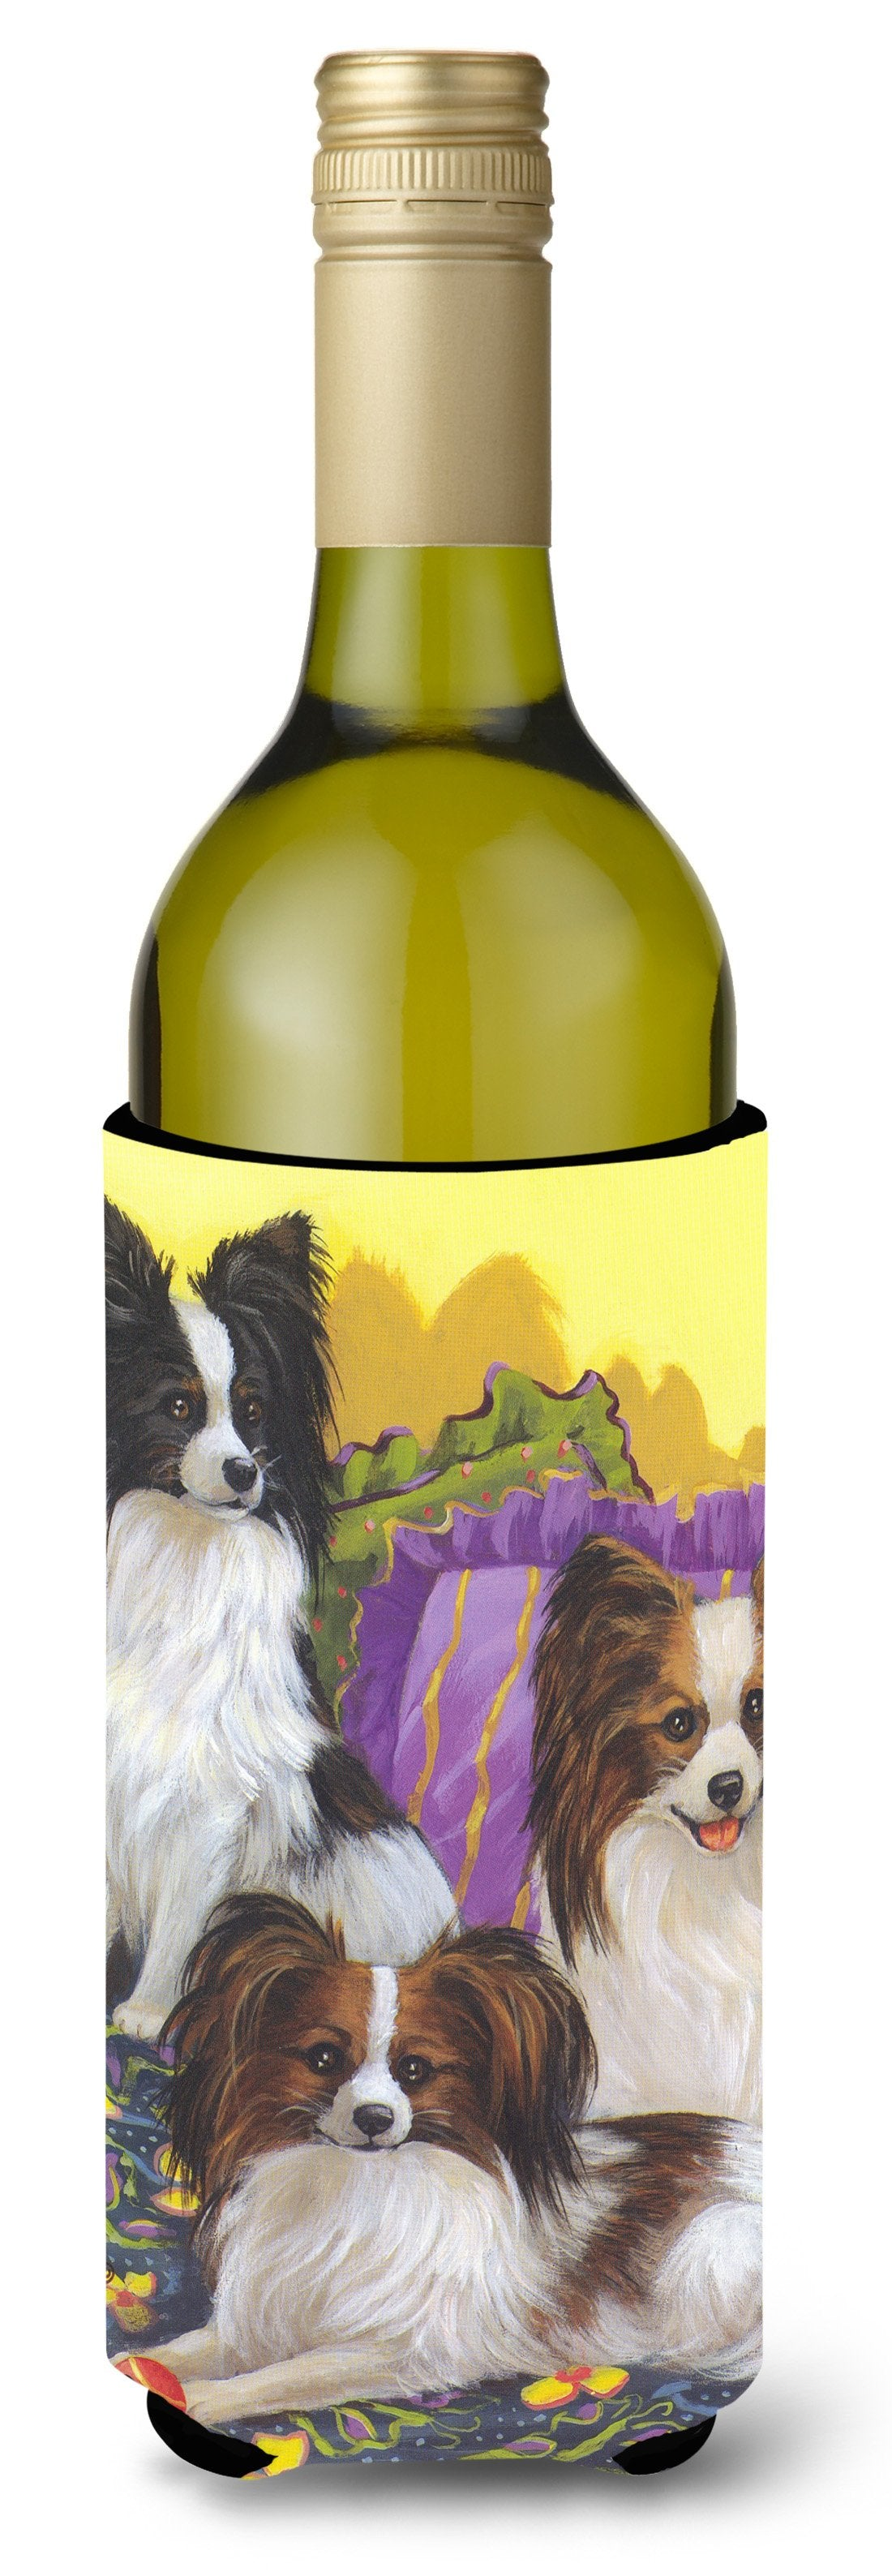 Papillon Party Pals Wine Bottle Hugger PPP3144LITERK by Caroline's Treasures